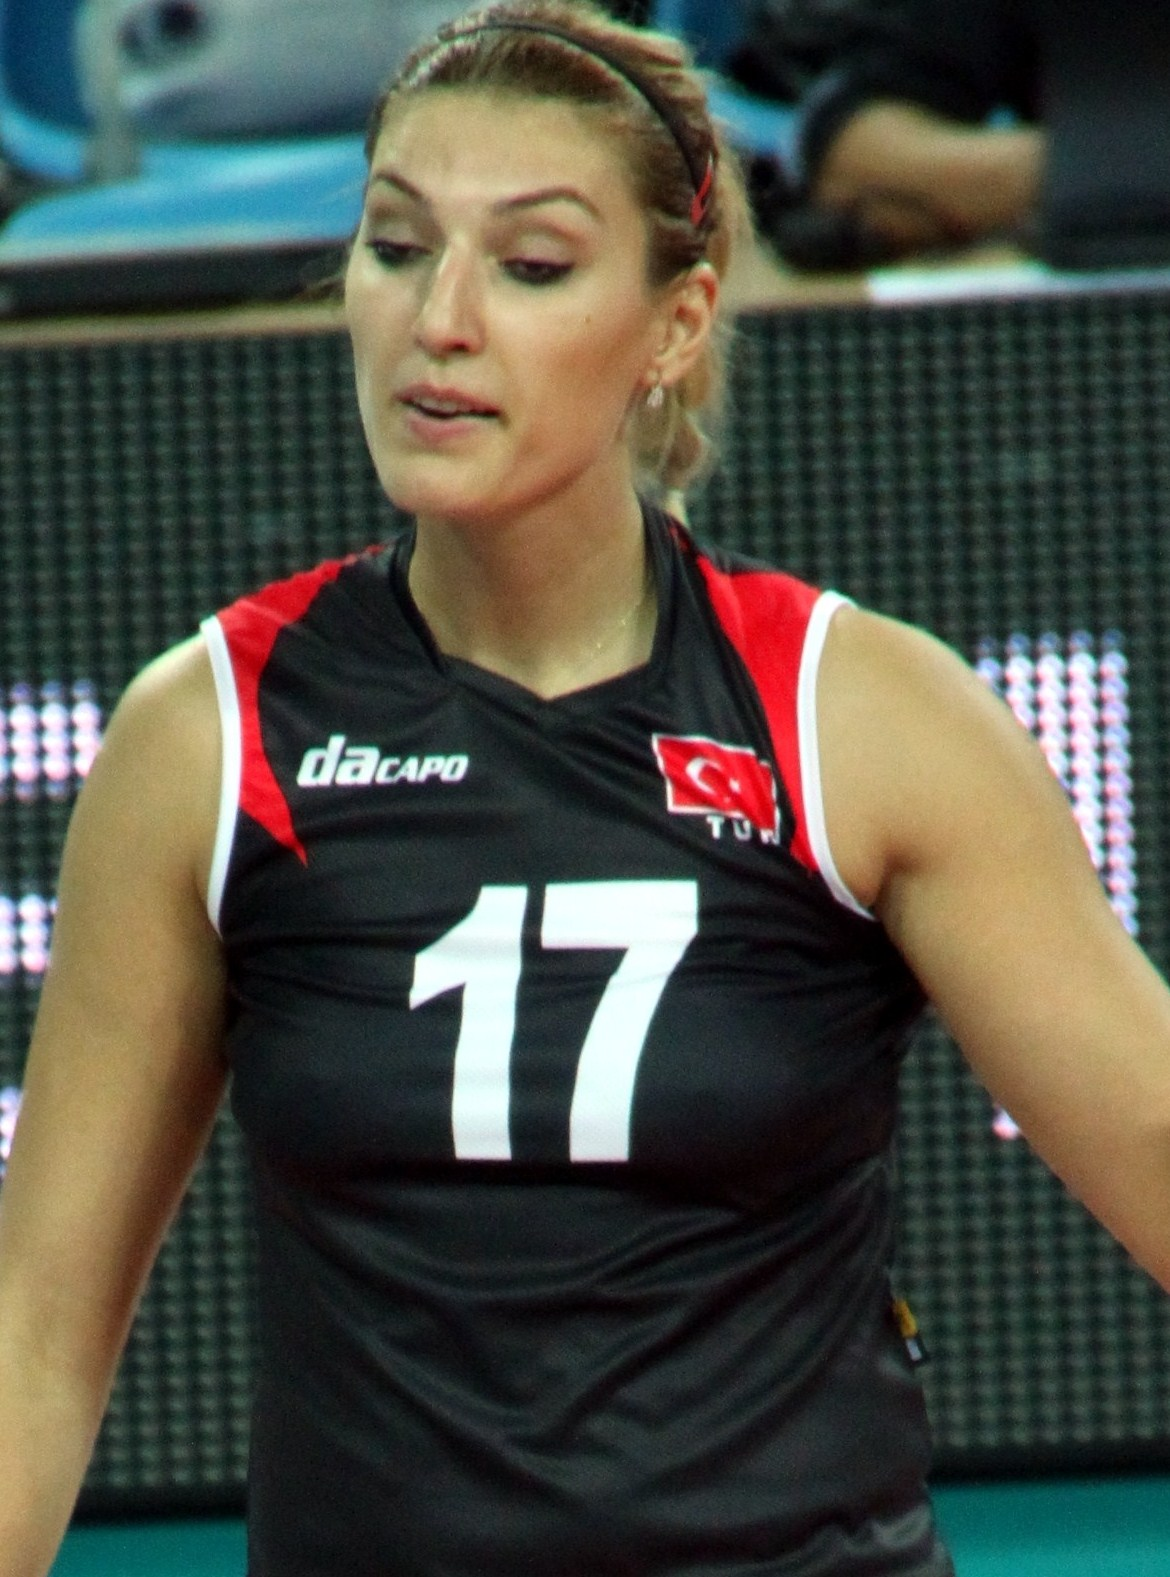 17 neslihan demir turkish volleyball player - 1 5